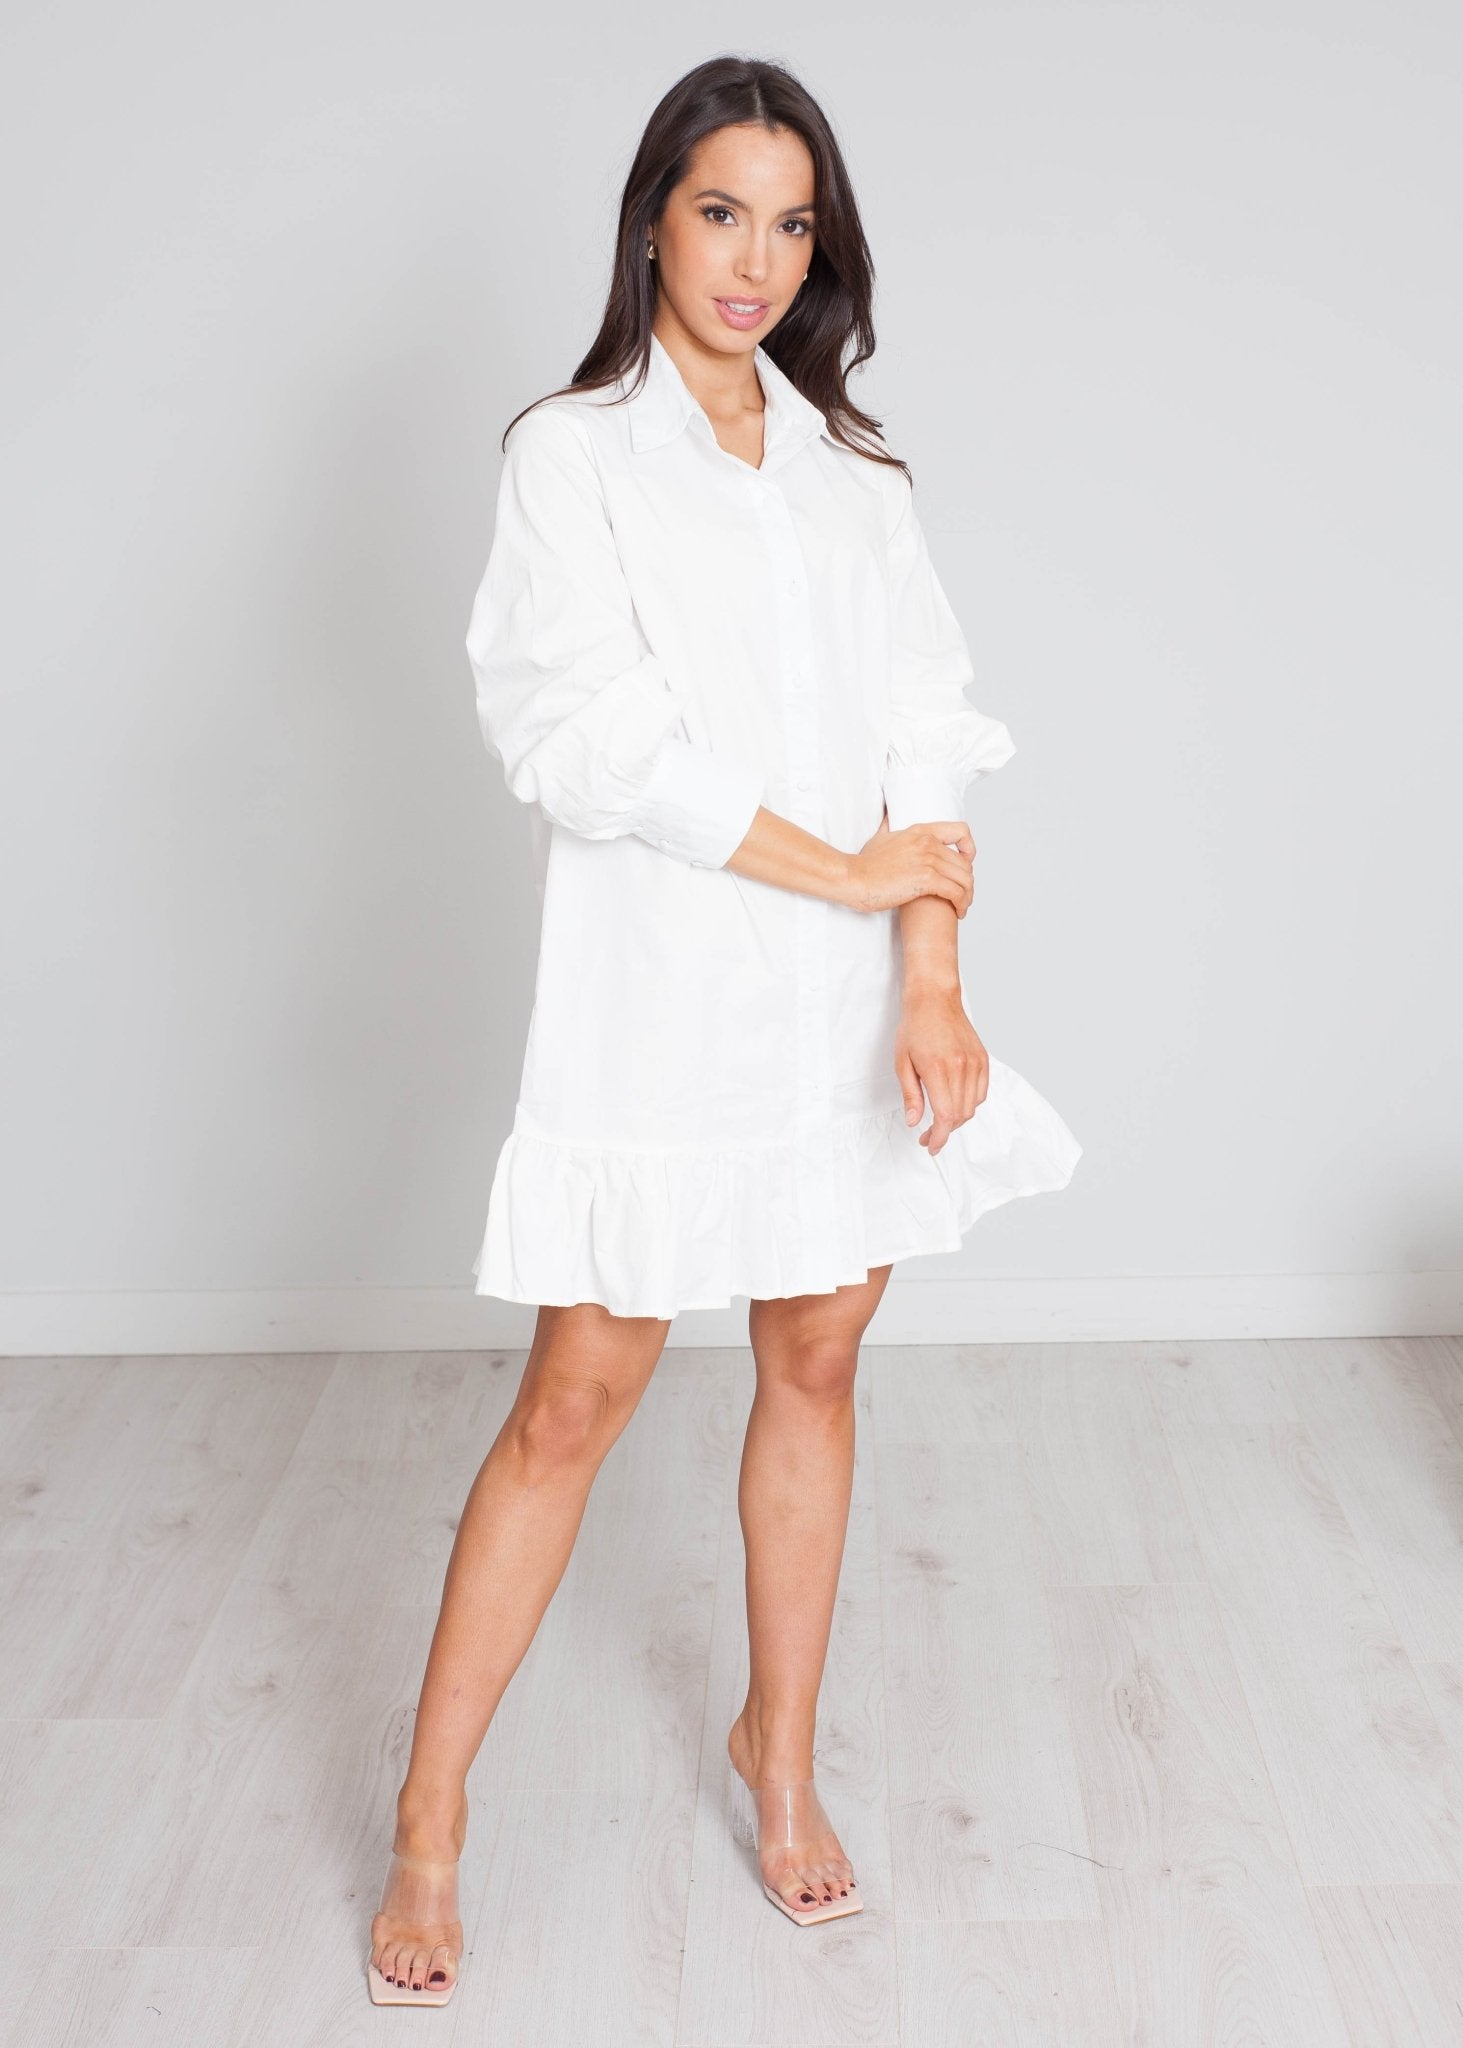 Elsa Frill Hem Shirt Dress In White - The Walk in Wardrobe